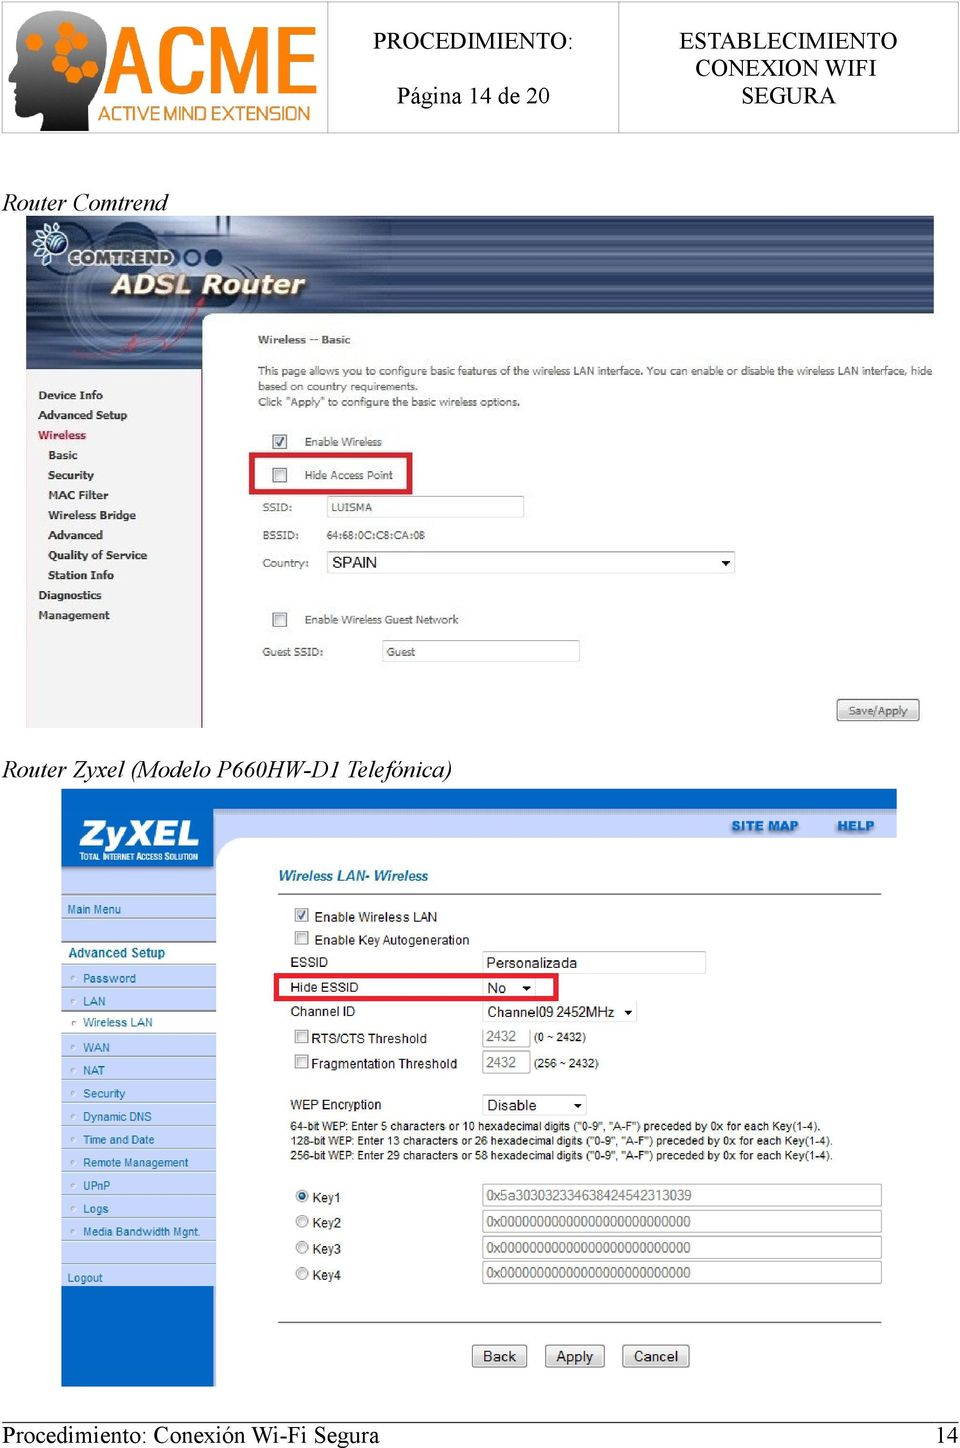 Router Zyxel